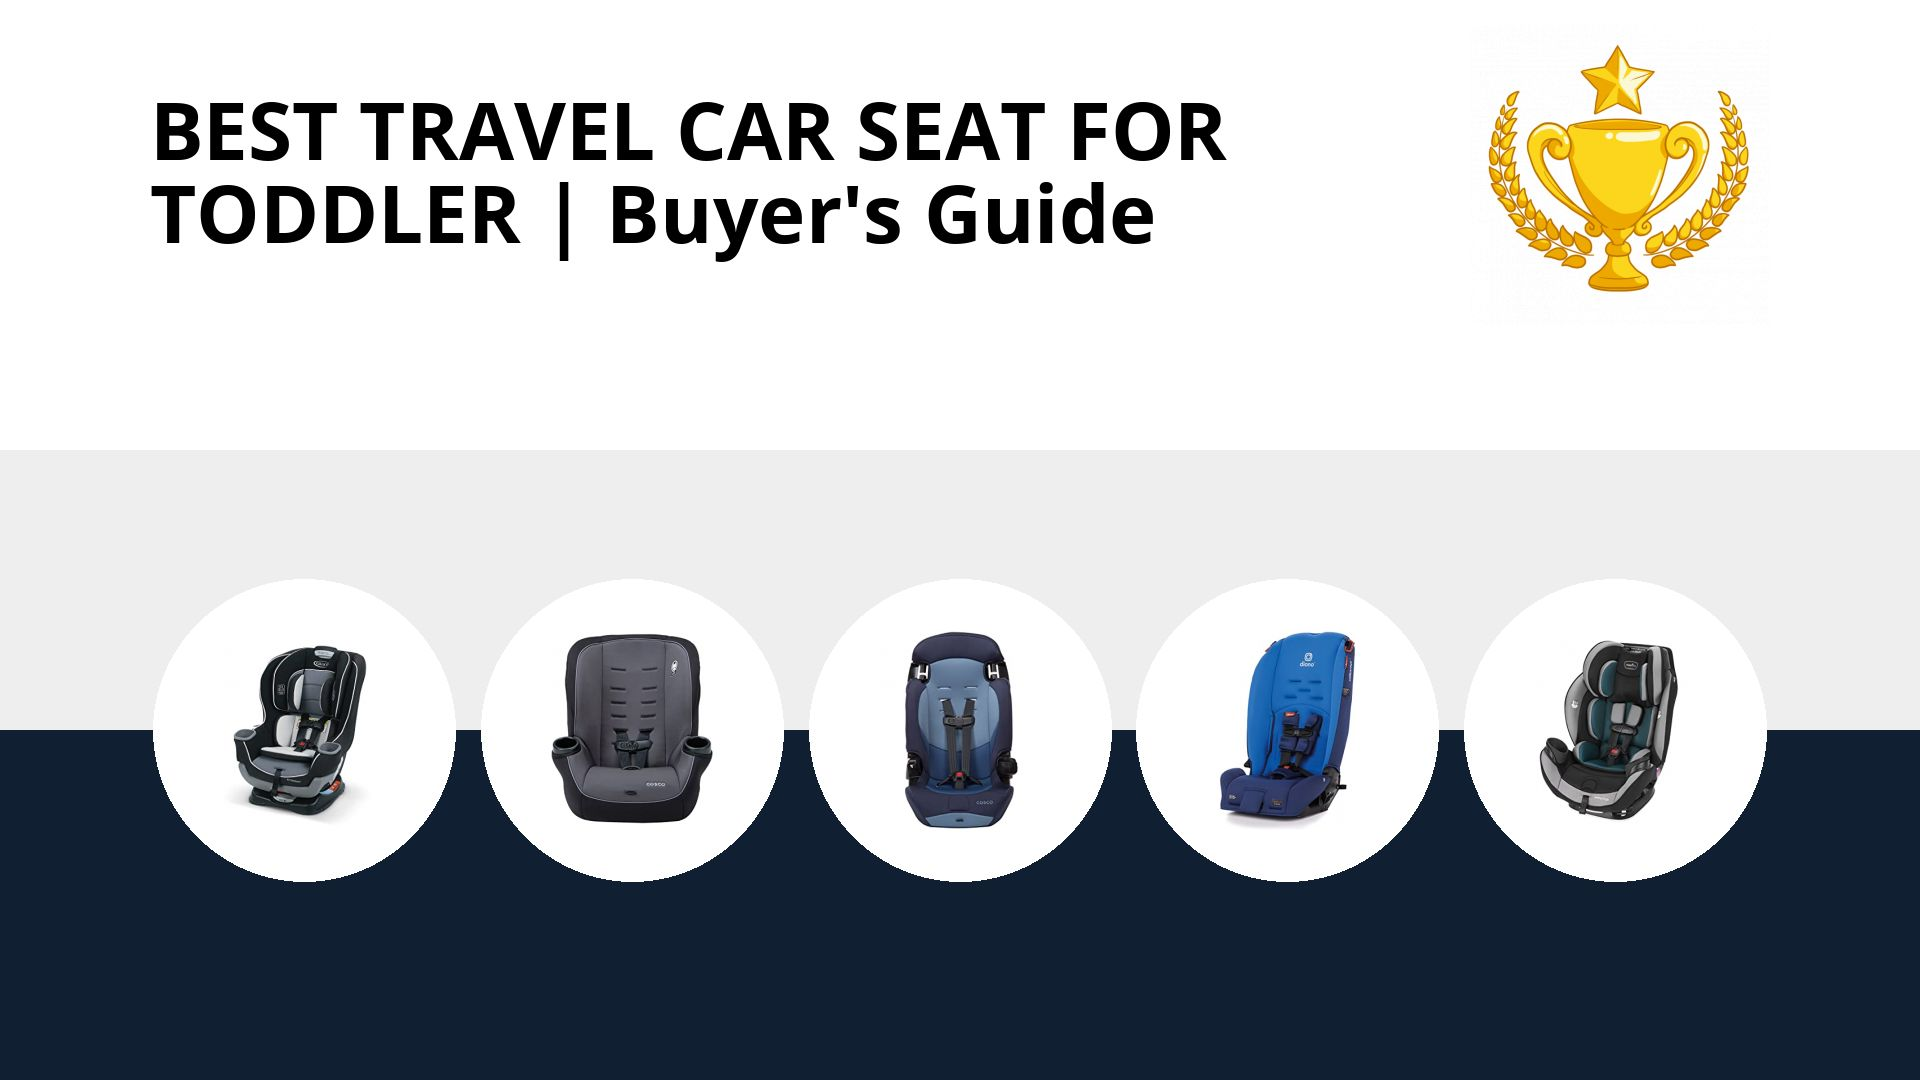 Best Travel Car Seat For Toddler: image